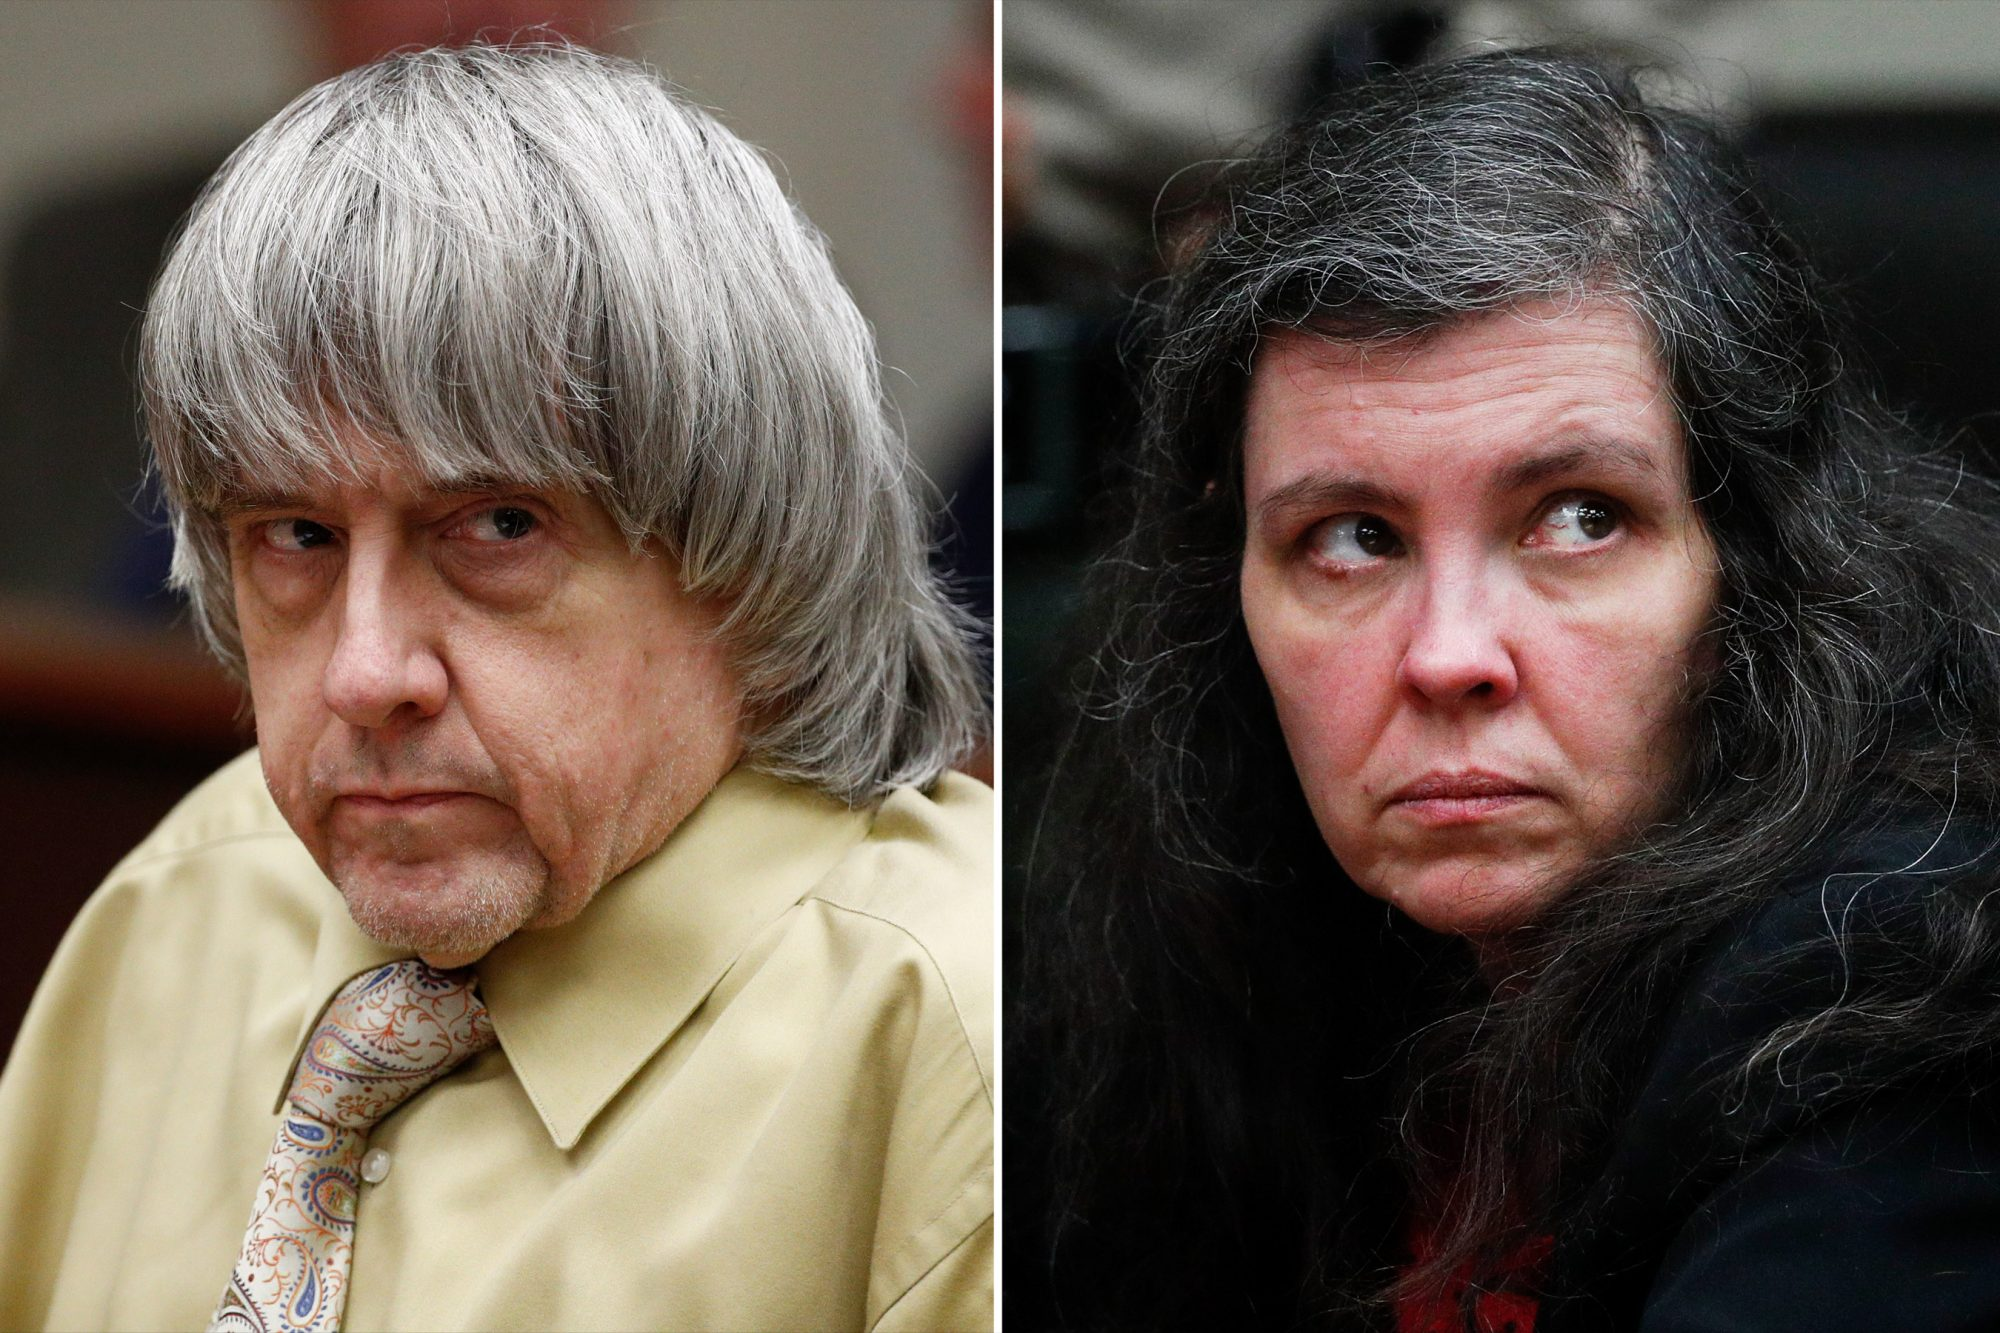 PARENTS PLEAD GUILTY TO IMPRISONING, TORTURING KIDS